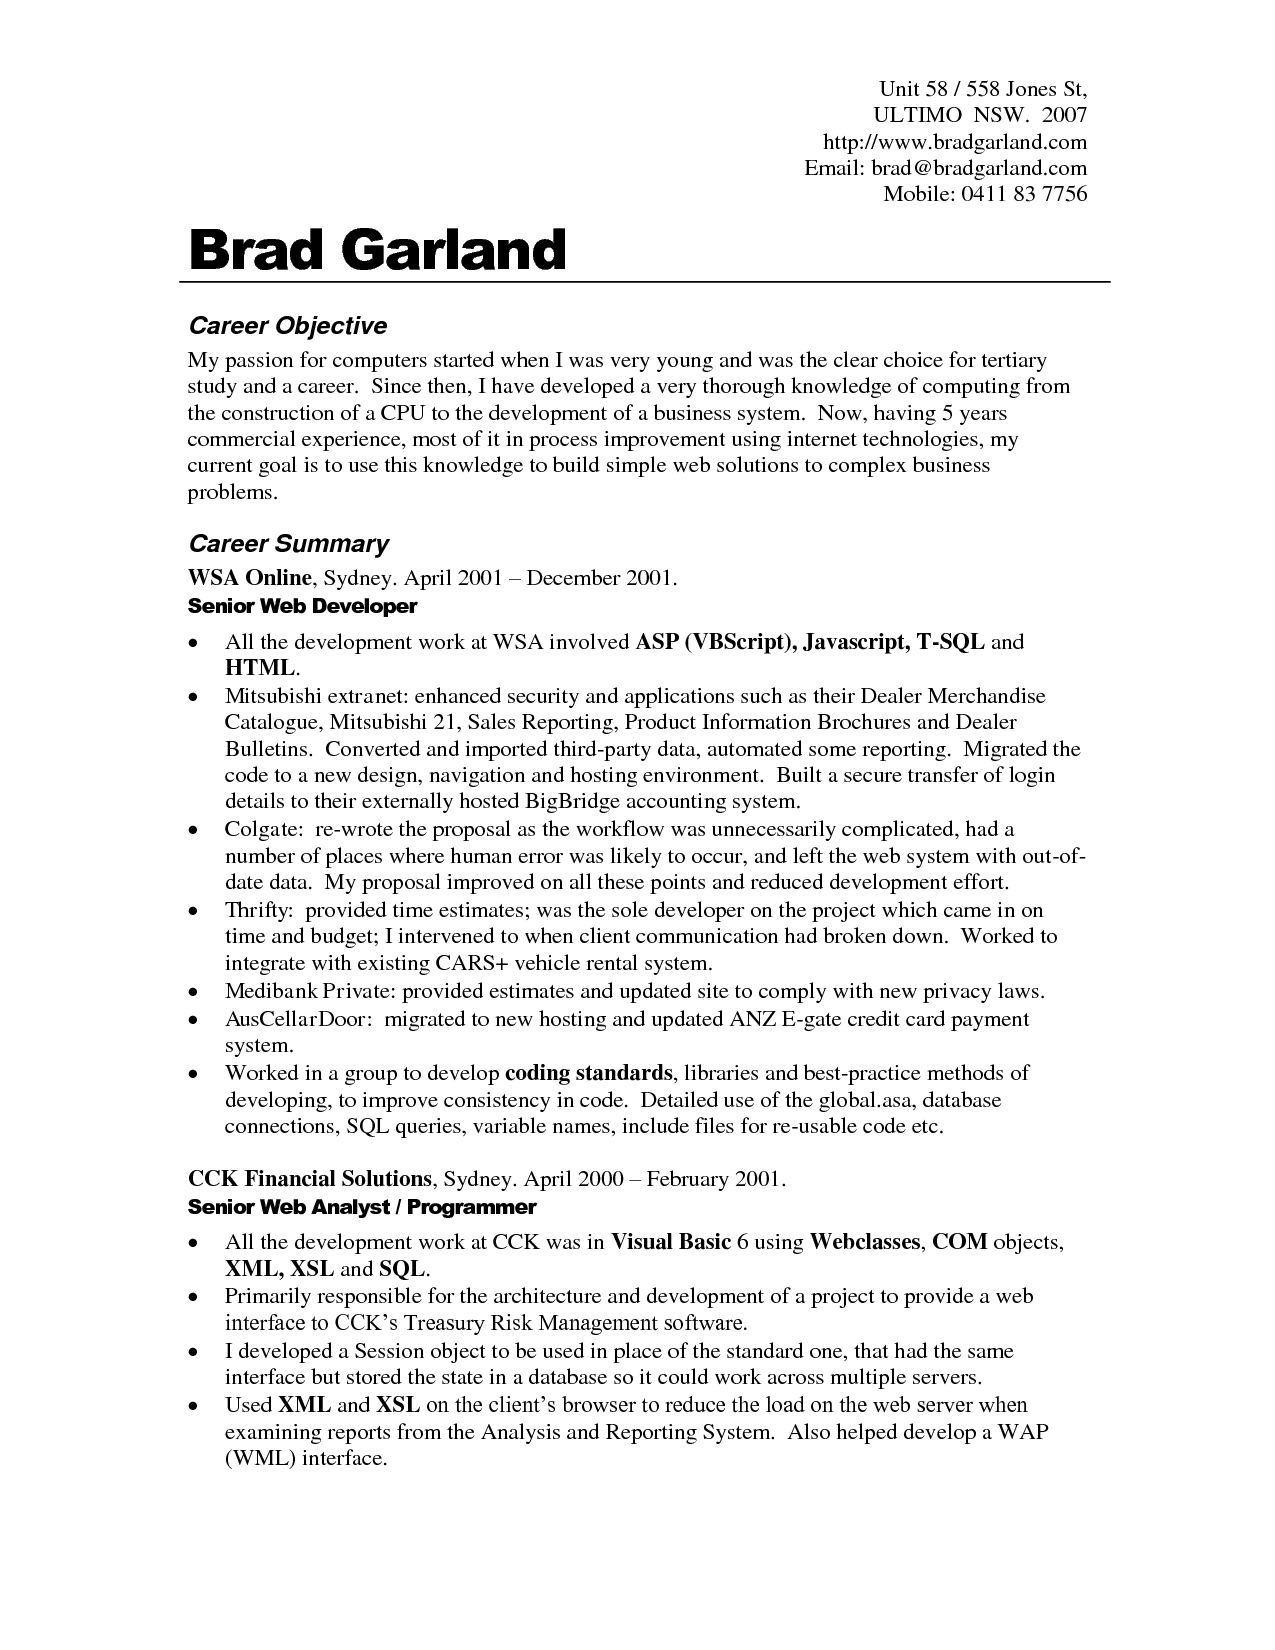 Example Of Objective Cool Resume Examples Job Objective  Sample Resume Entry Level And .